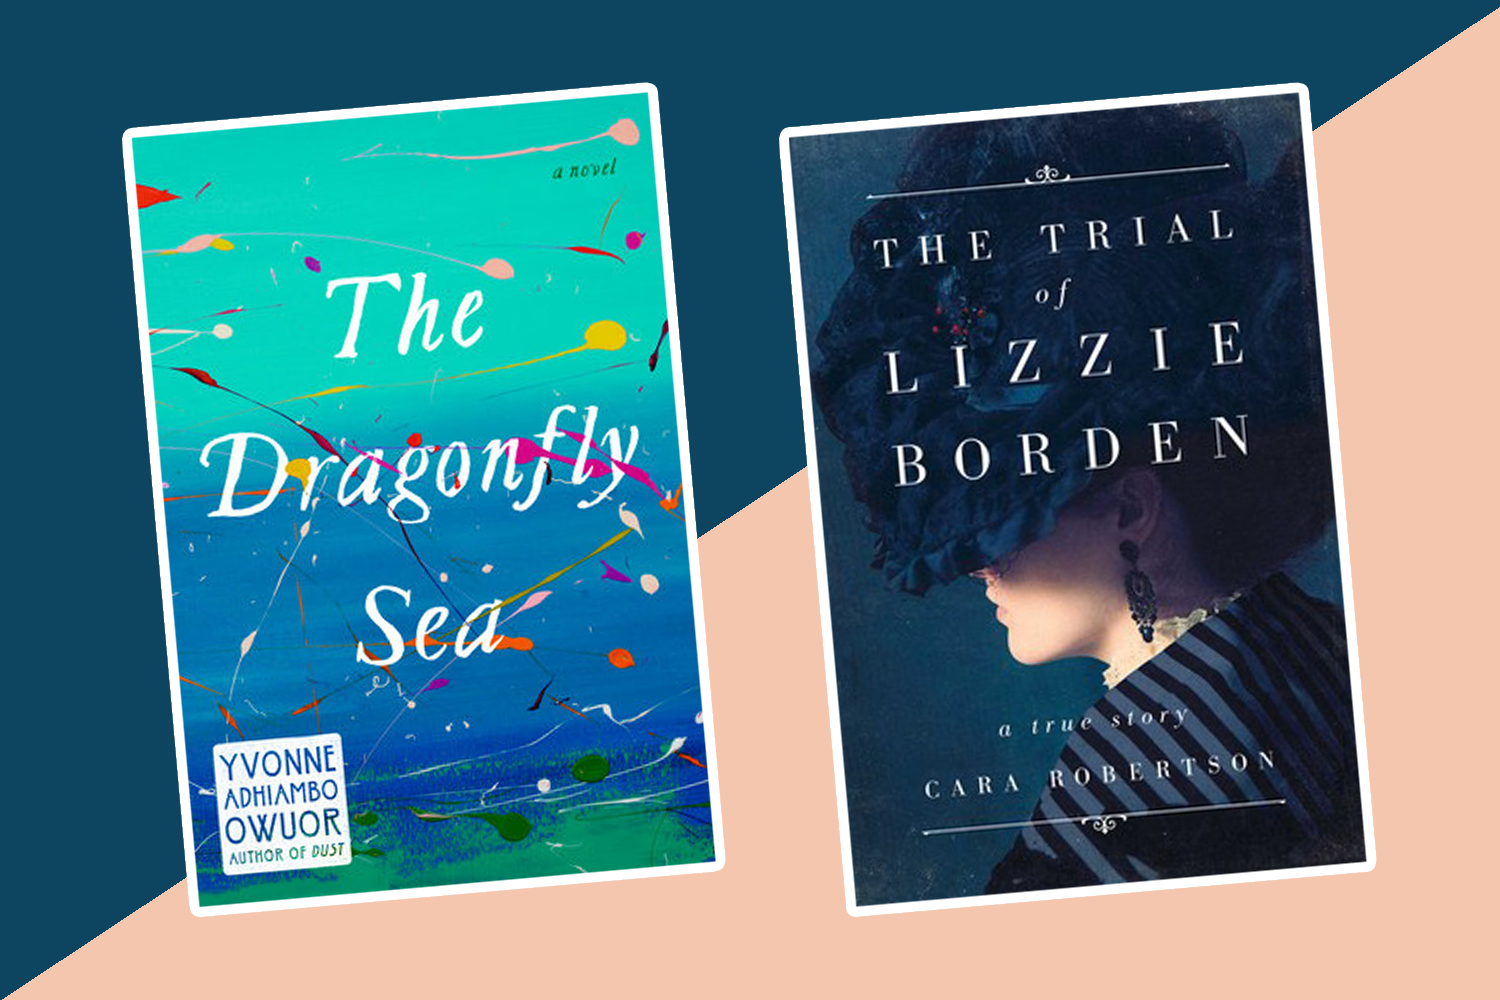 The best new books to read this week: <em>The Dragonfly Sea,</em> <em>The Trial of Lizzie Borden,</em> and more